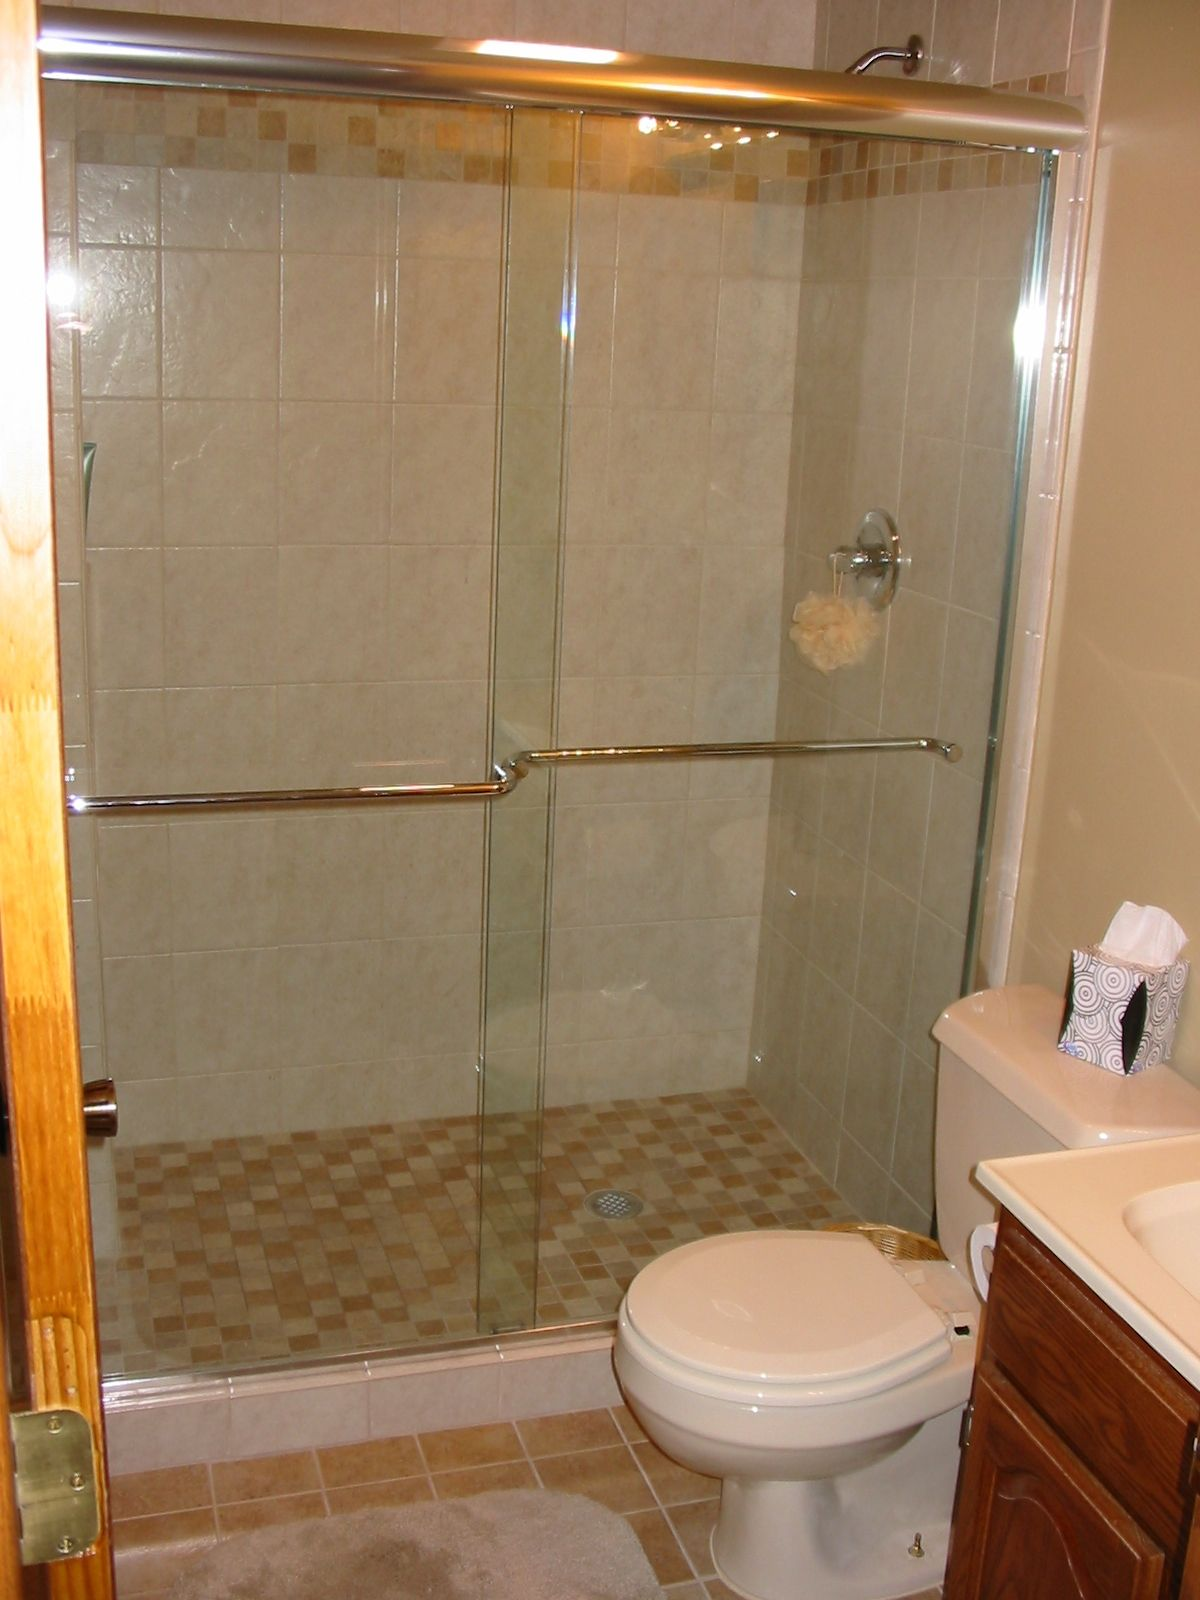 framless shower doors | Work Right Products - Bypass Shower Doors ...